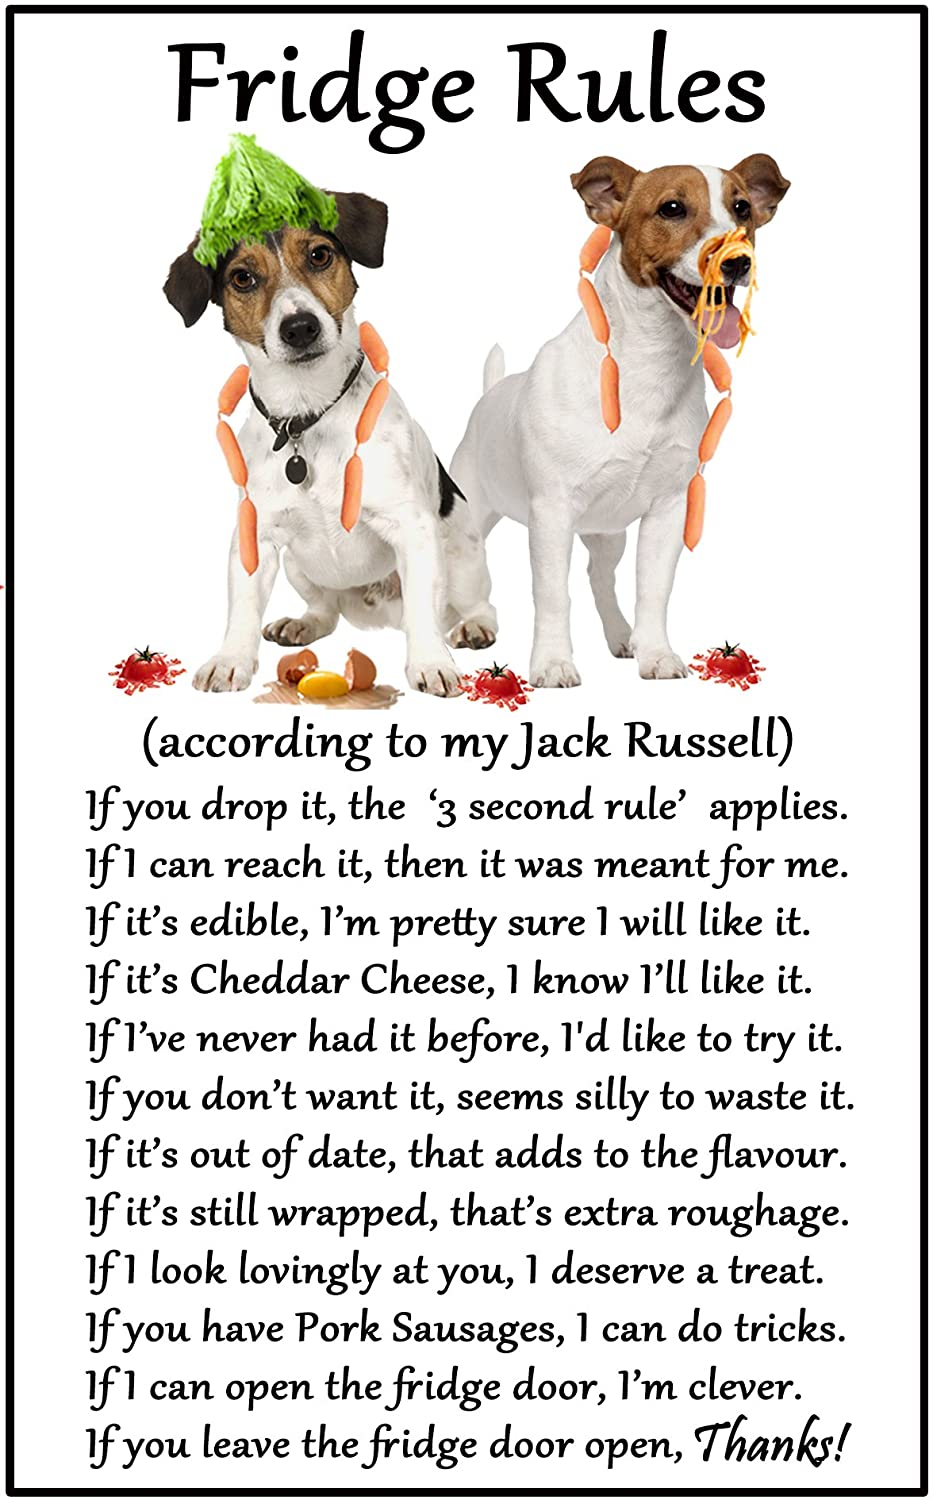 Jack russell dog design novelty socks in grey amazon clothing jack russell terrier gift fridge rules large fun flexible fridge magnet size 16cms nvjuhfo Images